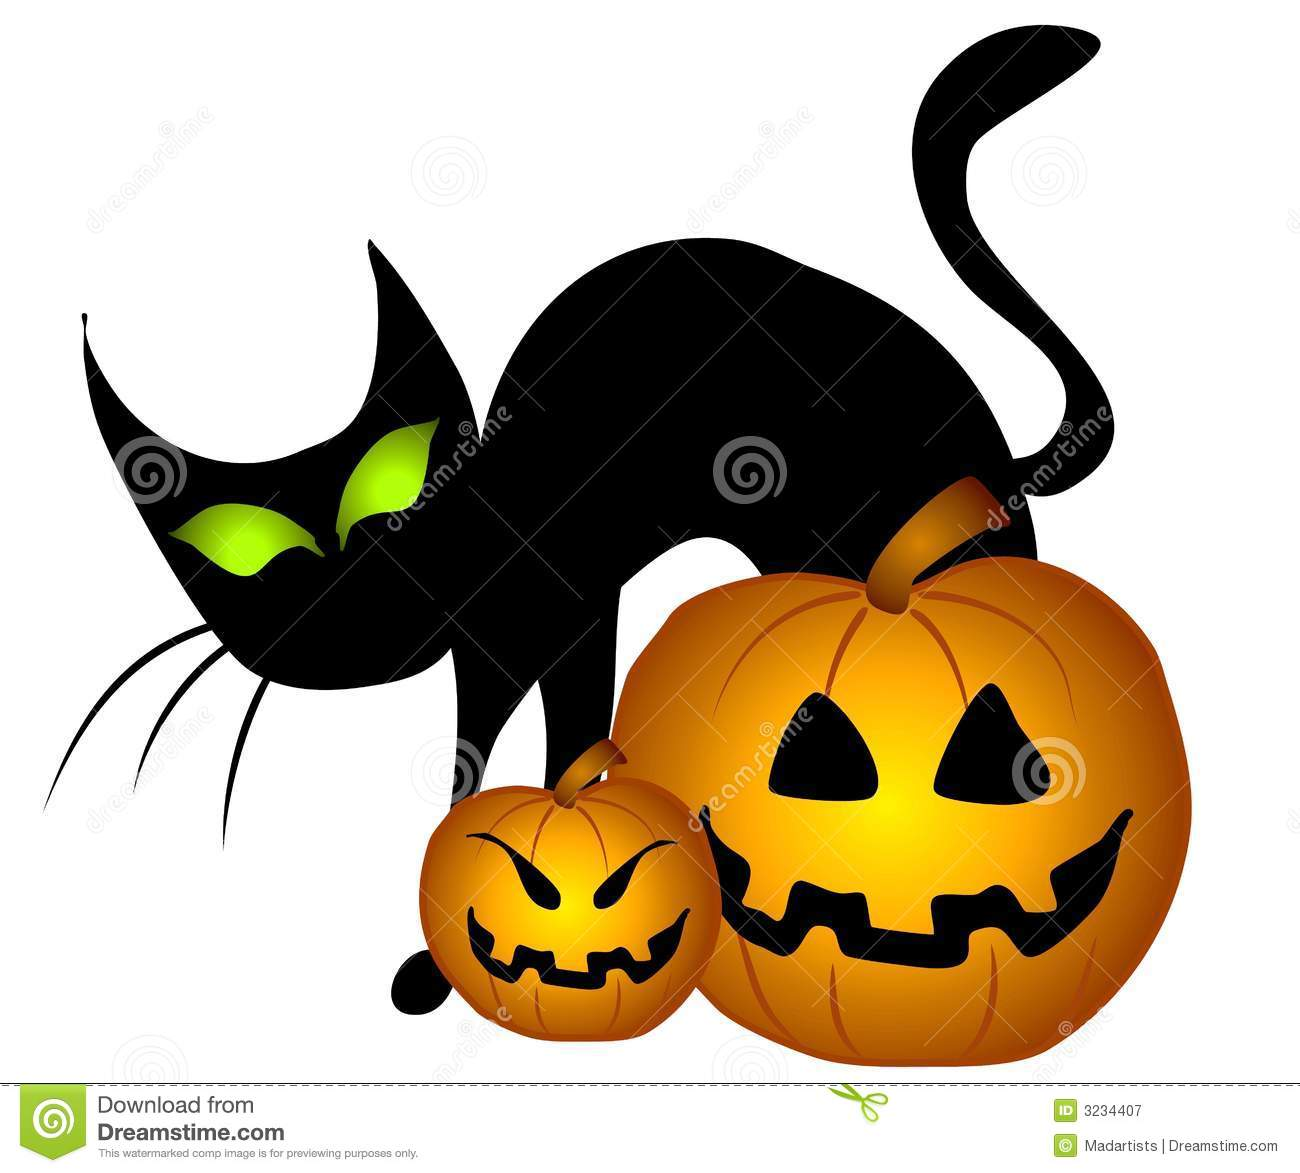 royaltyfree stock photo download black cat halloween pumpkins